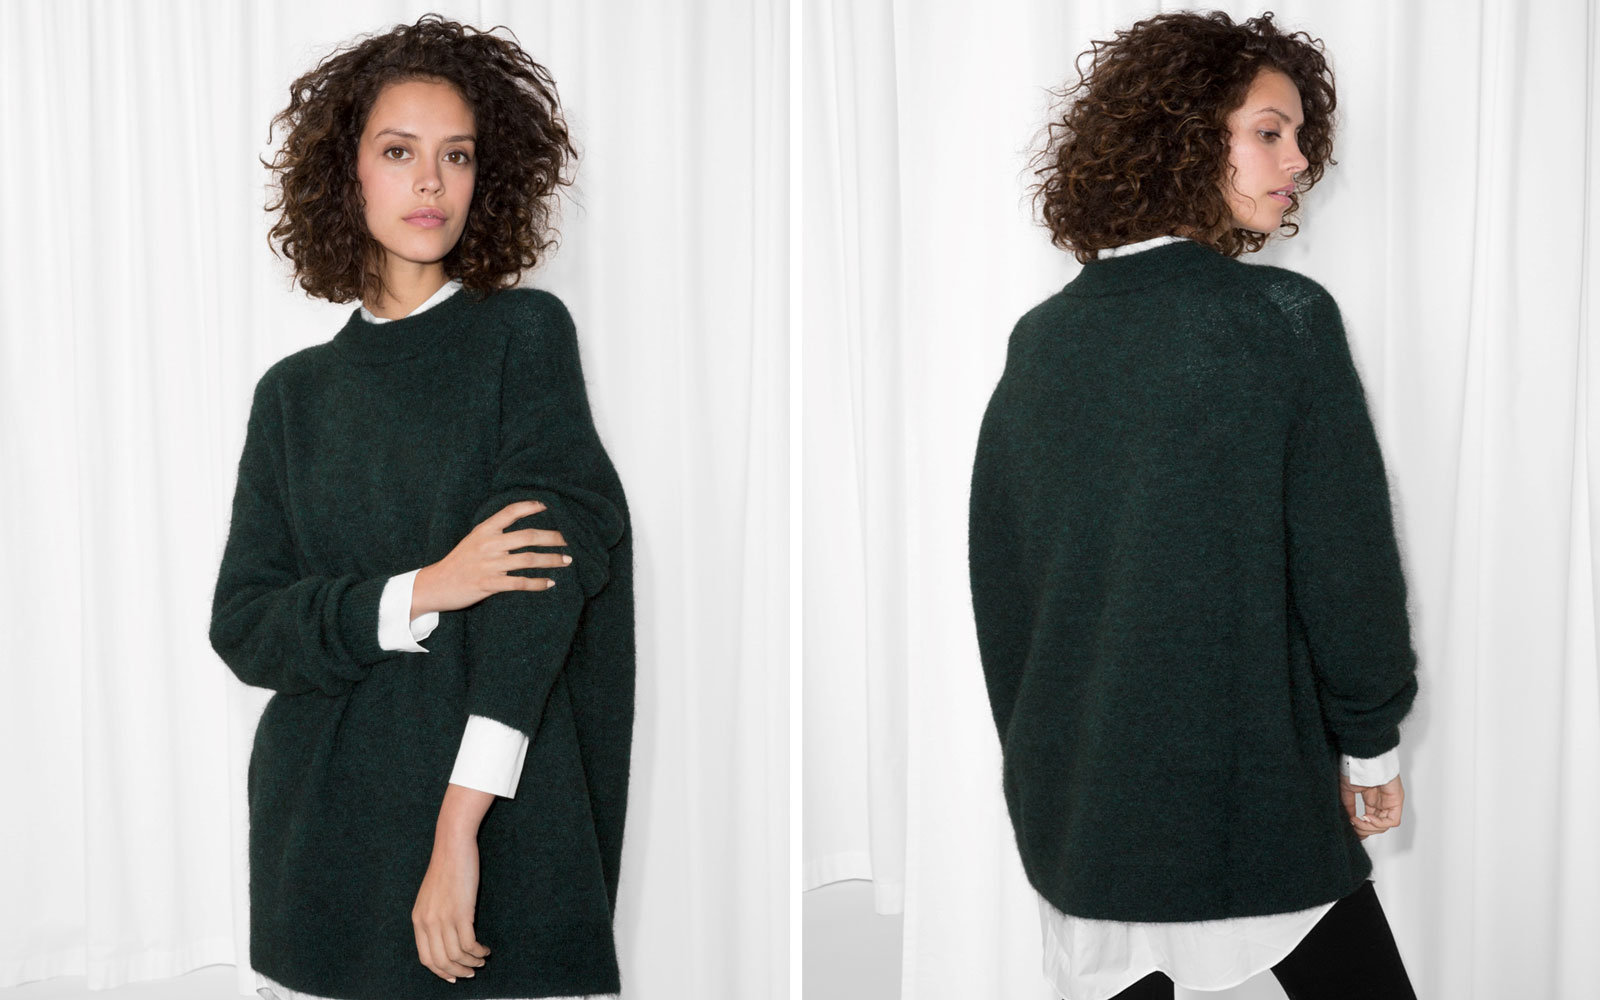 & Other Stories' Oversized Knit